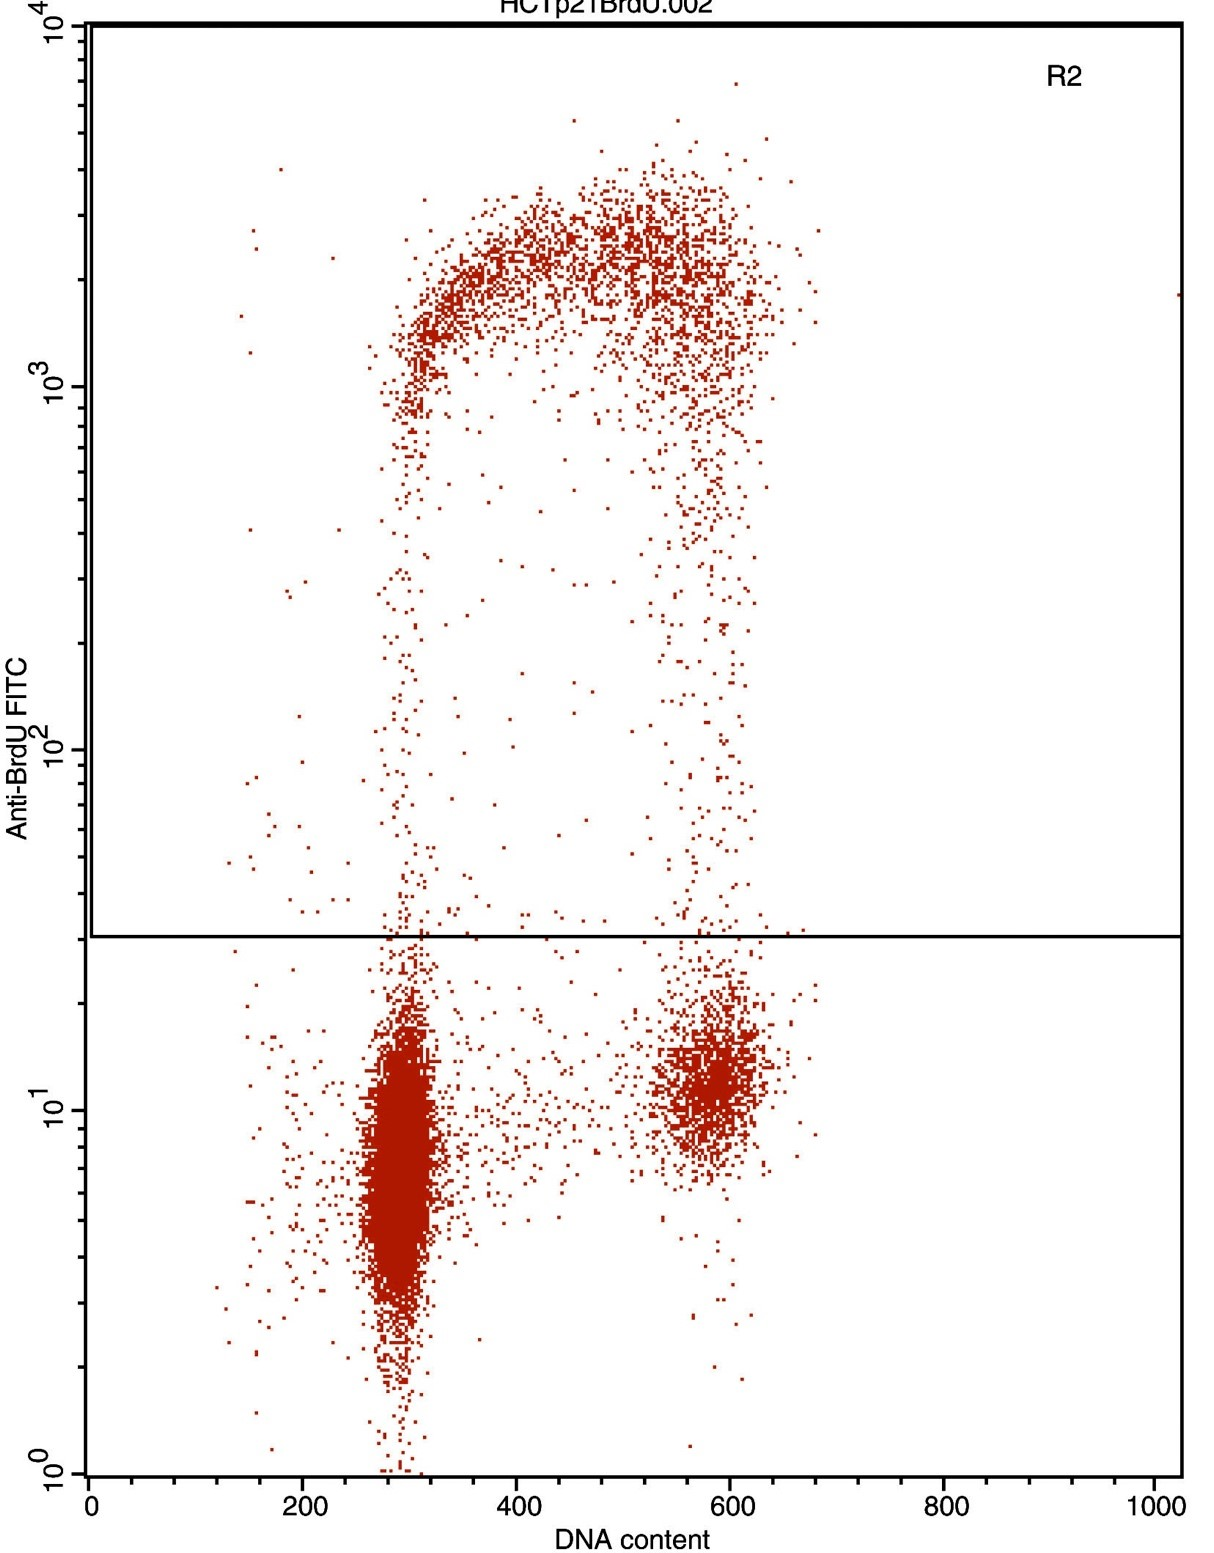 Figure 1b: Flow cytometric analysis of the BrdU-labeled fraction in a tissue cell culture.